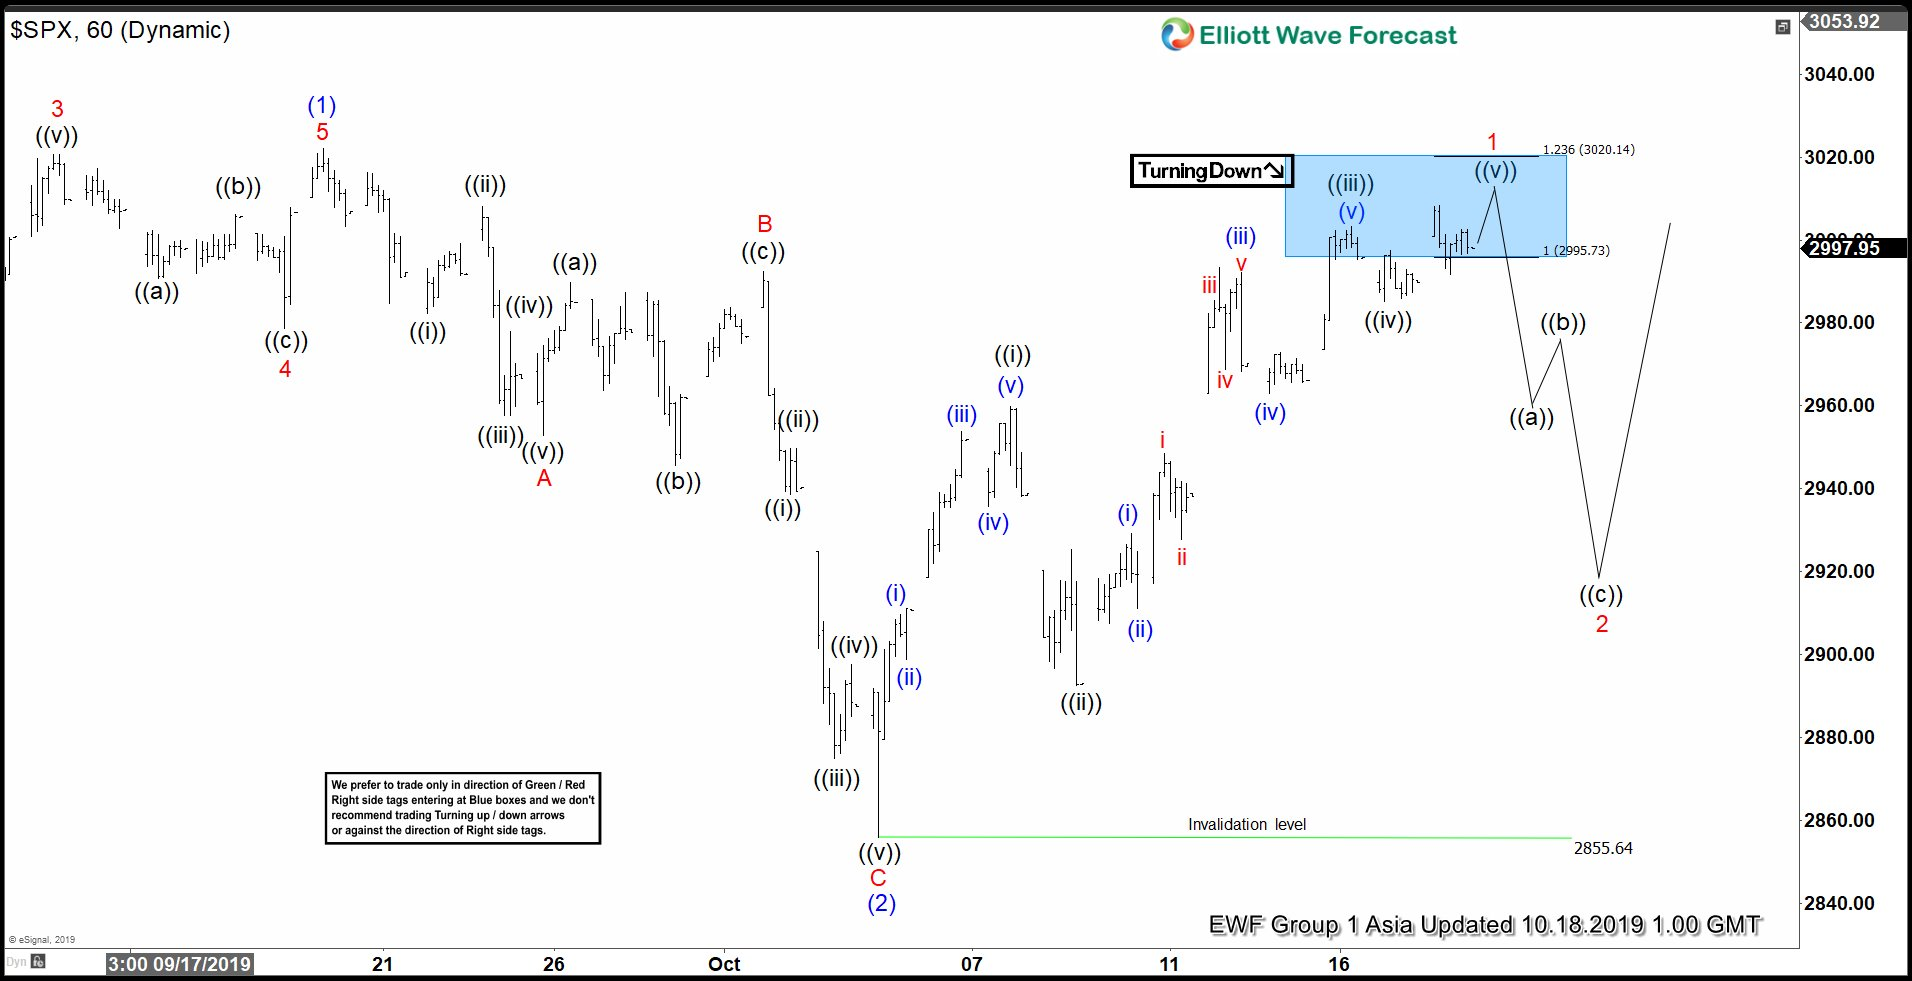 Elliott Wave View: S&P 500 (SPX) Looking to Break to All Time High